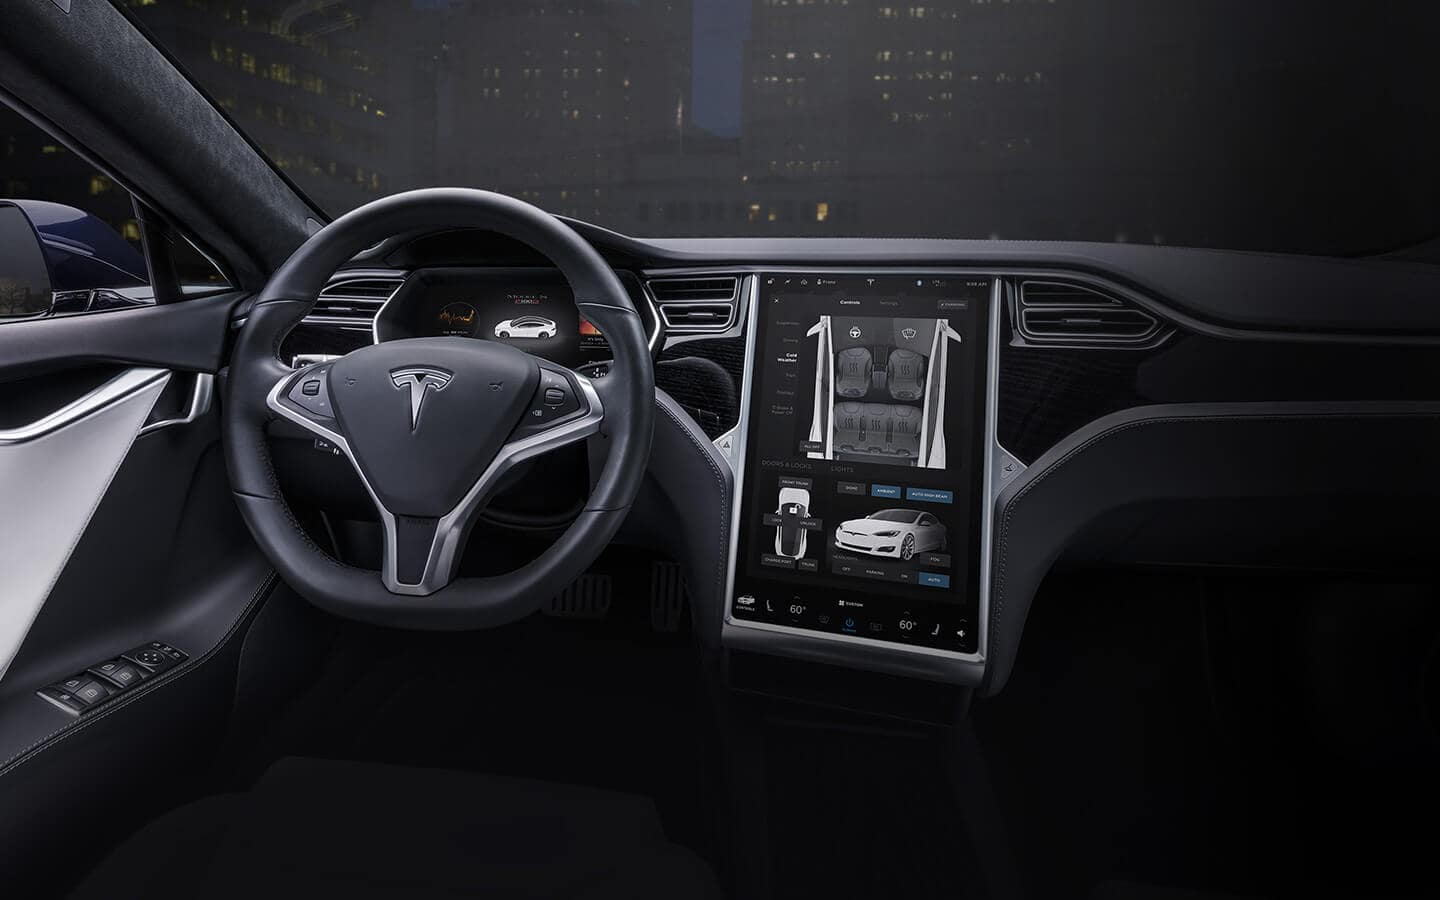 2019 Tesla Model S Dashboard Interior View